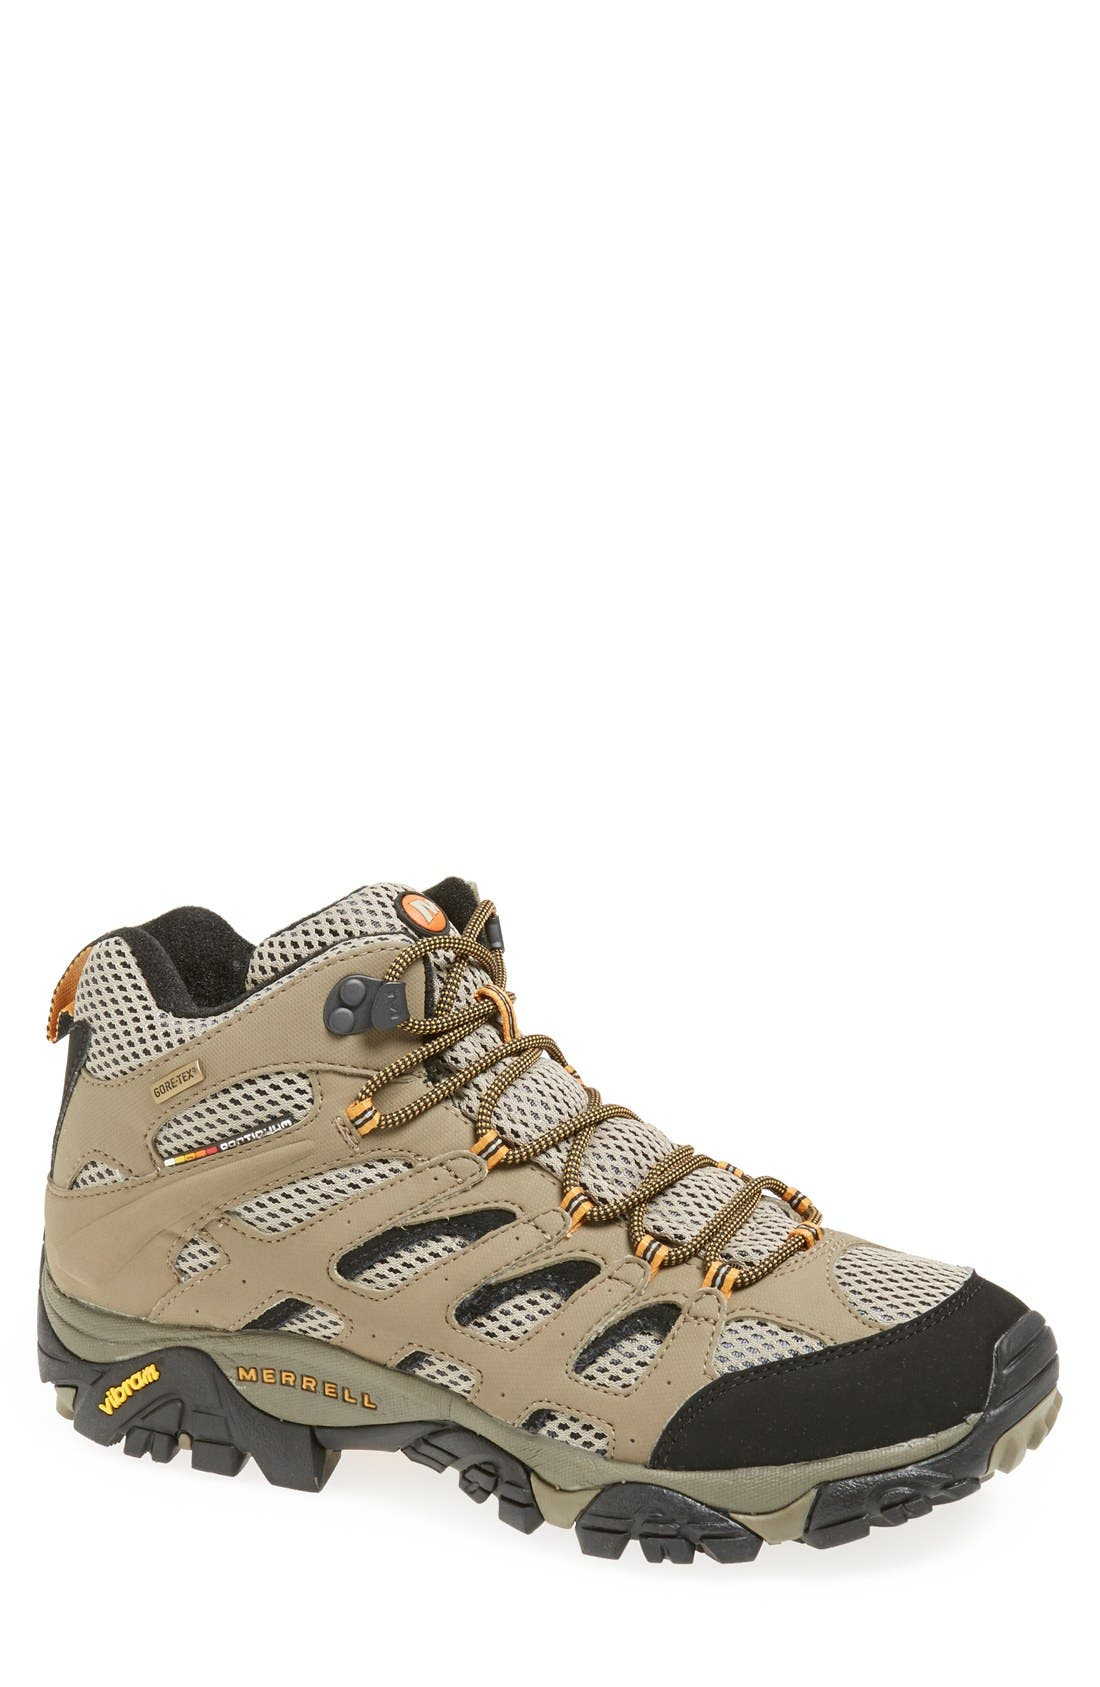 Main Image - Merrell 'Moab Mid Gore-Tex® XCR' Hiking Boot (Men) (Online Only)